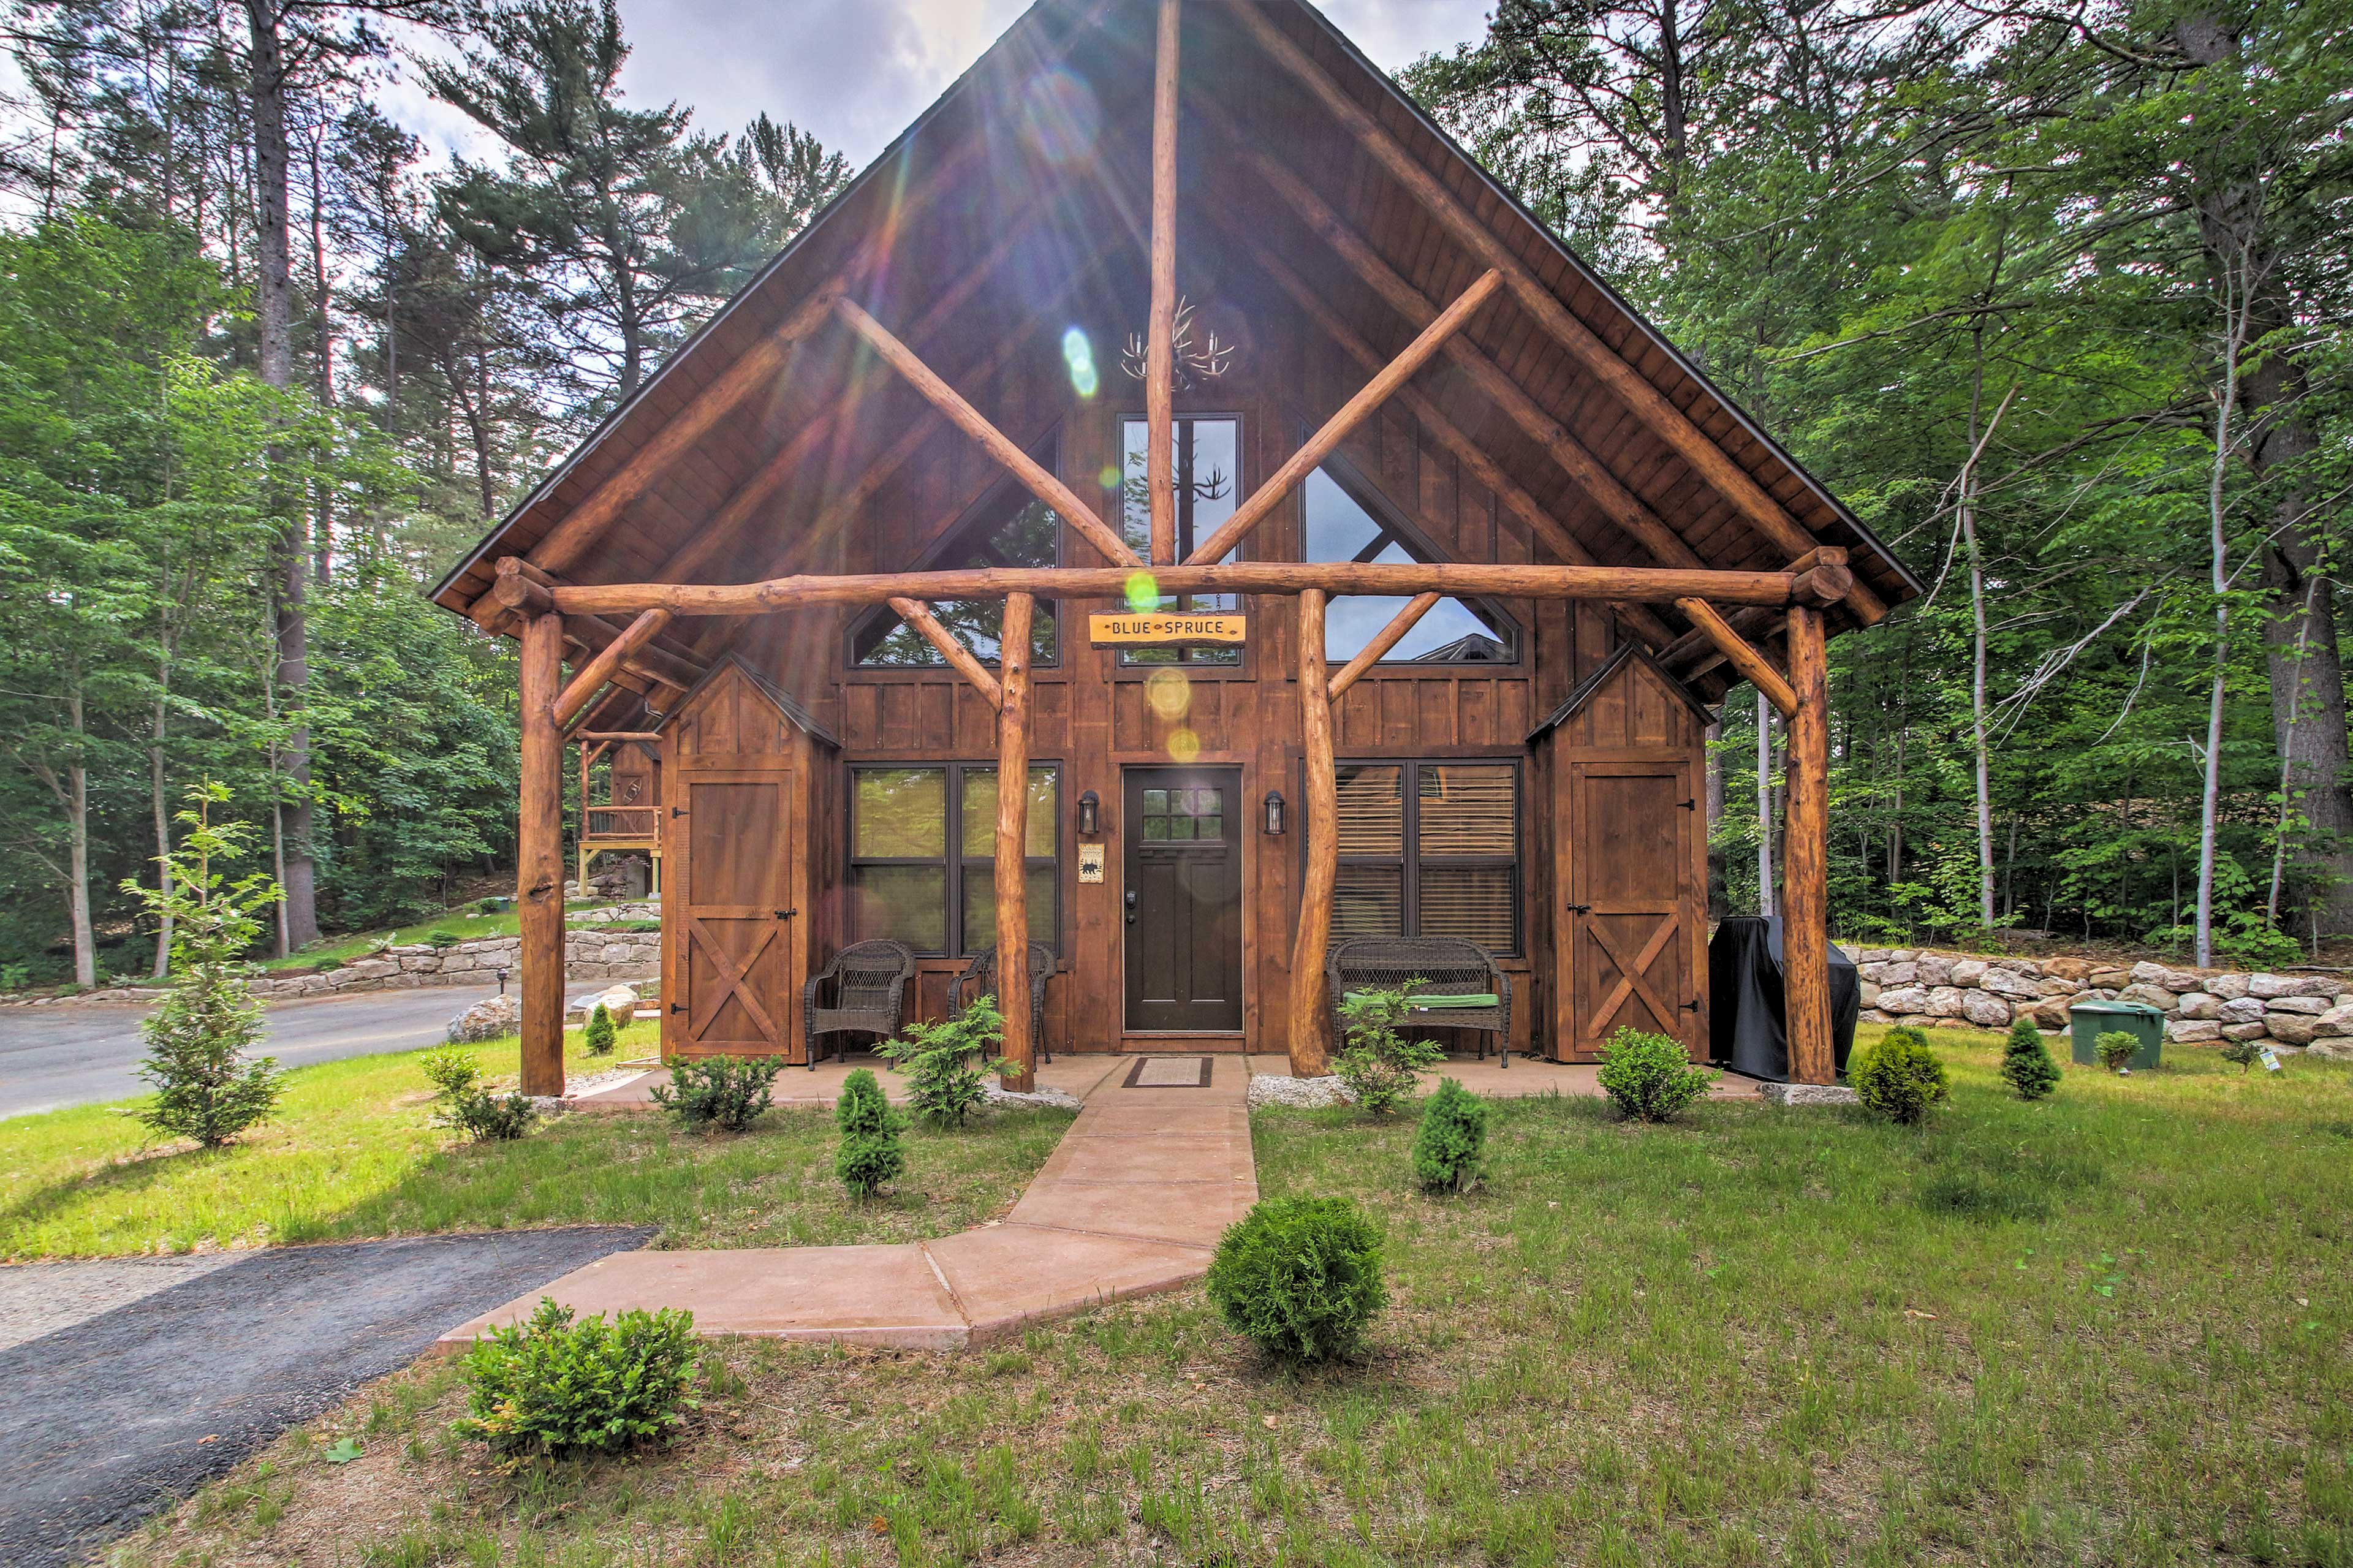 Plan your next mountain getaway to this 3-bed, 2-bath vacation rental house!